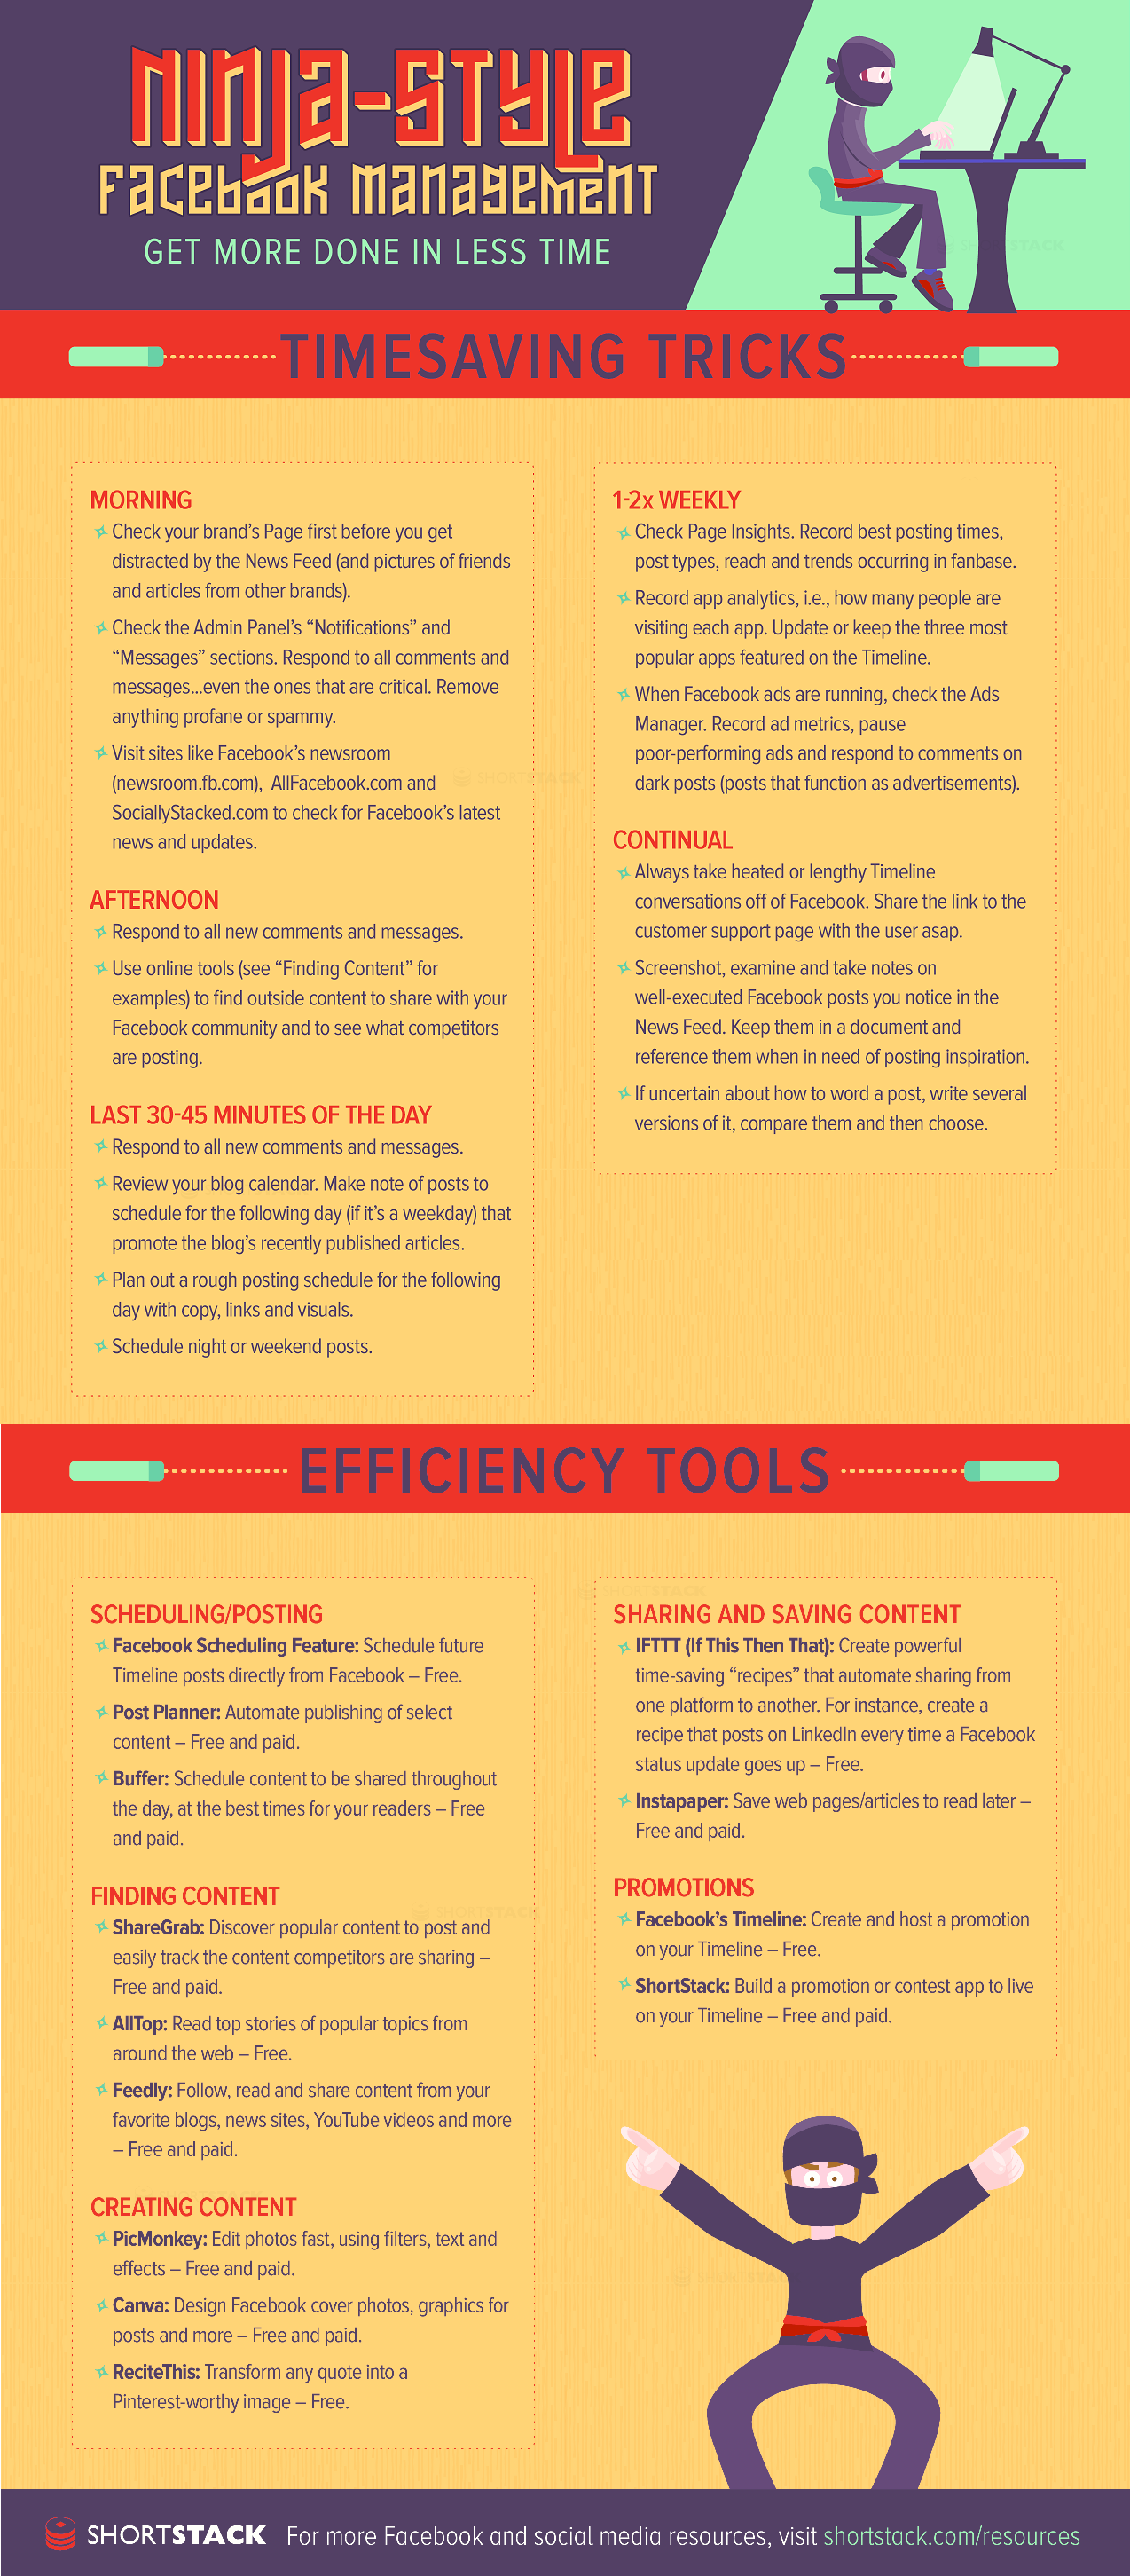 Time Saving Tricks And Tools For Facebook Management - infographic